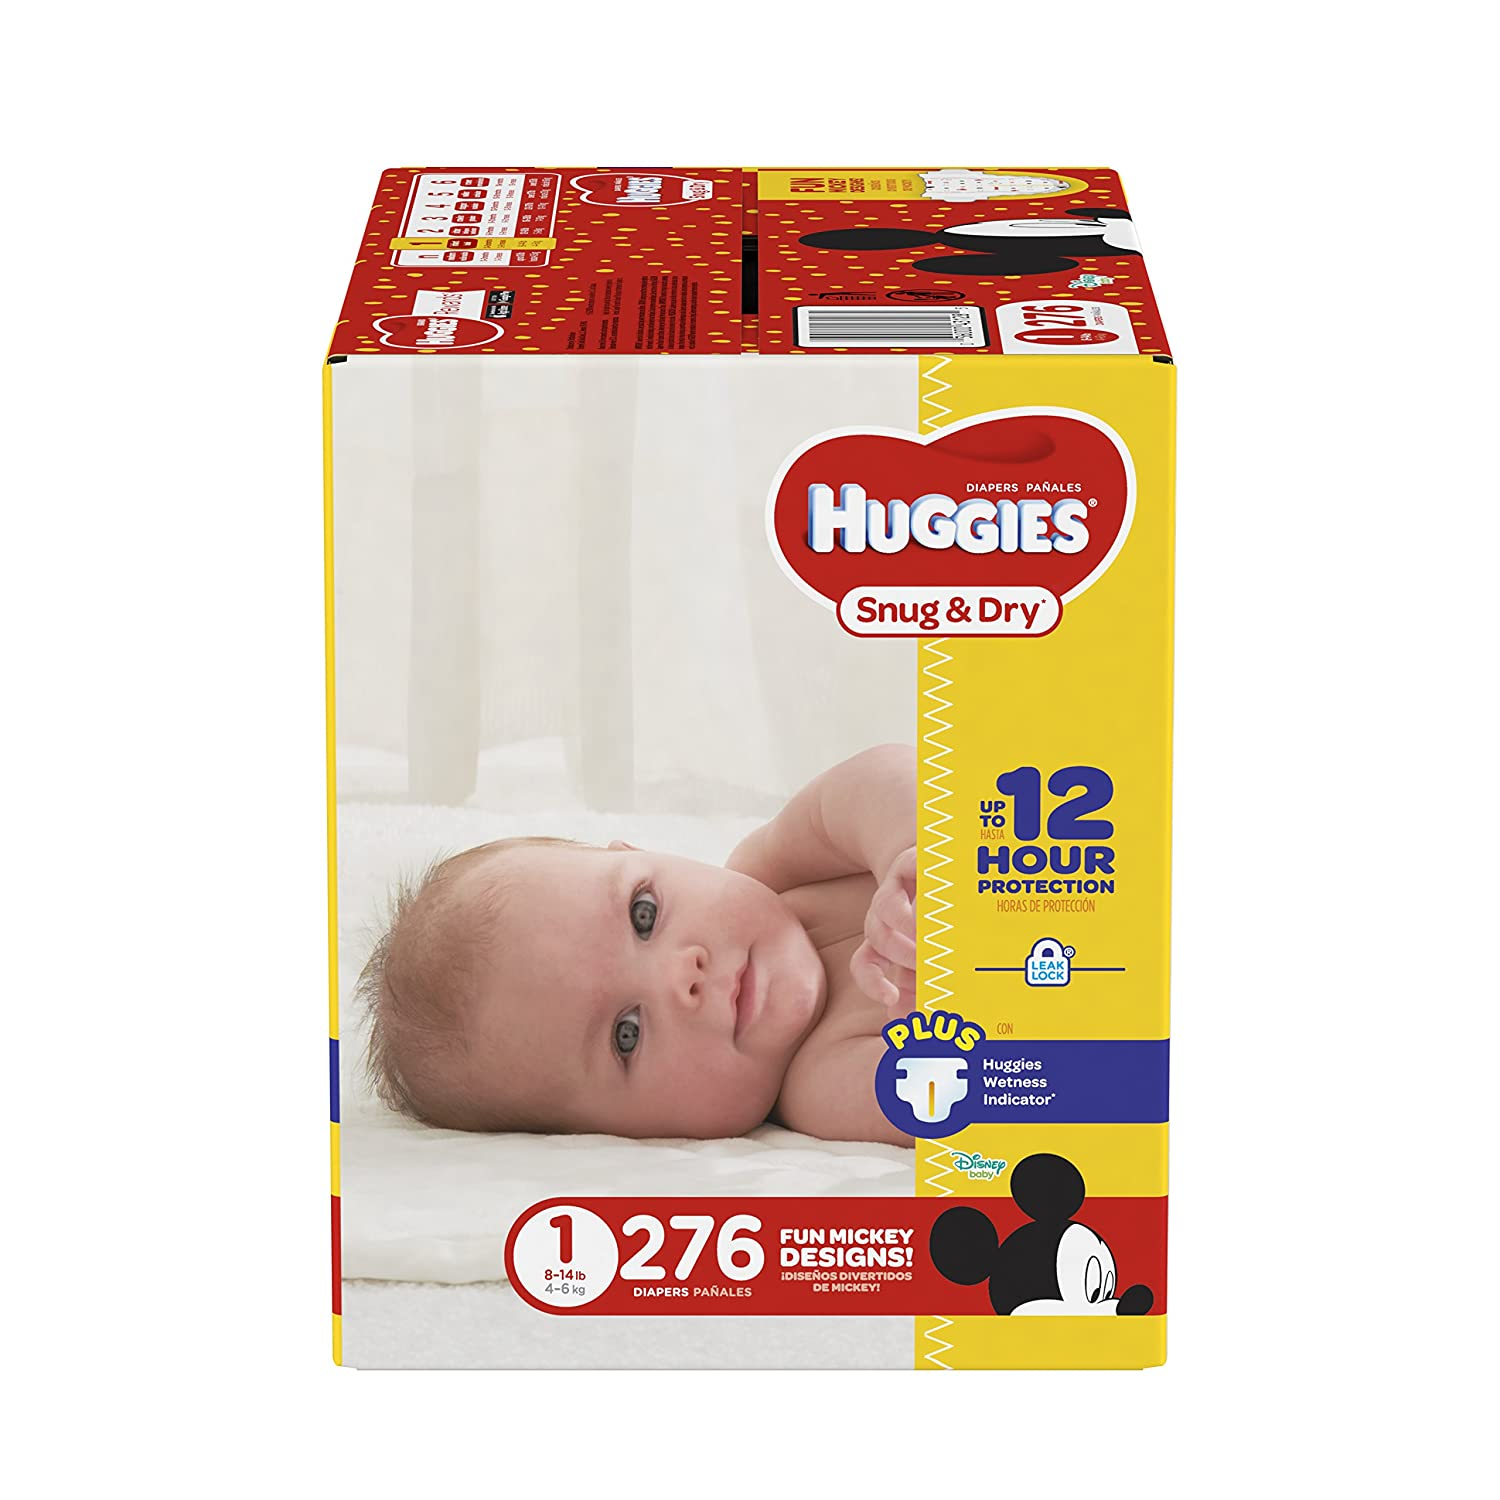 HUGGIES Snug & Dry Diapers, Size 3, for 16-28 lbs., One Month Supply (222 Count) of Baby Diapers, Packaging May Vary Kimberly Clark 10036000365419